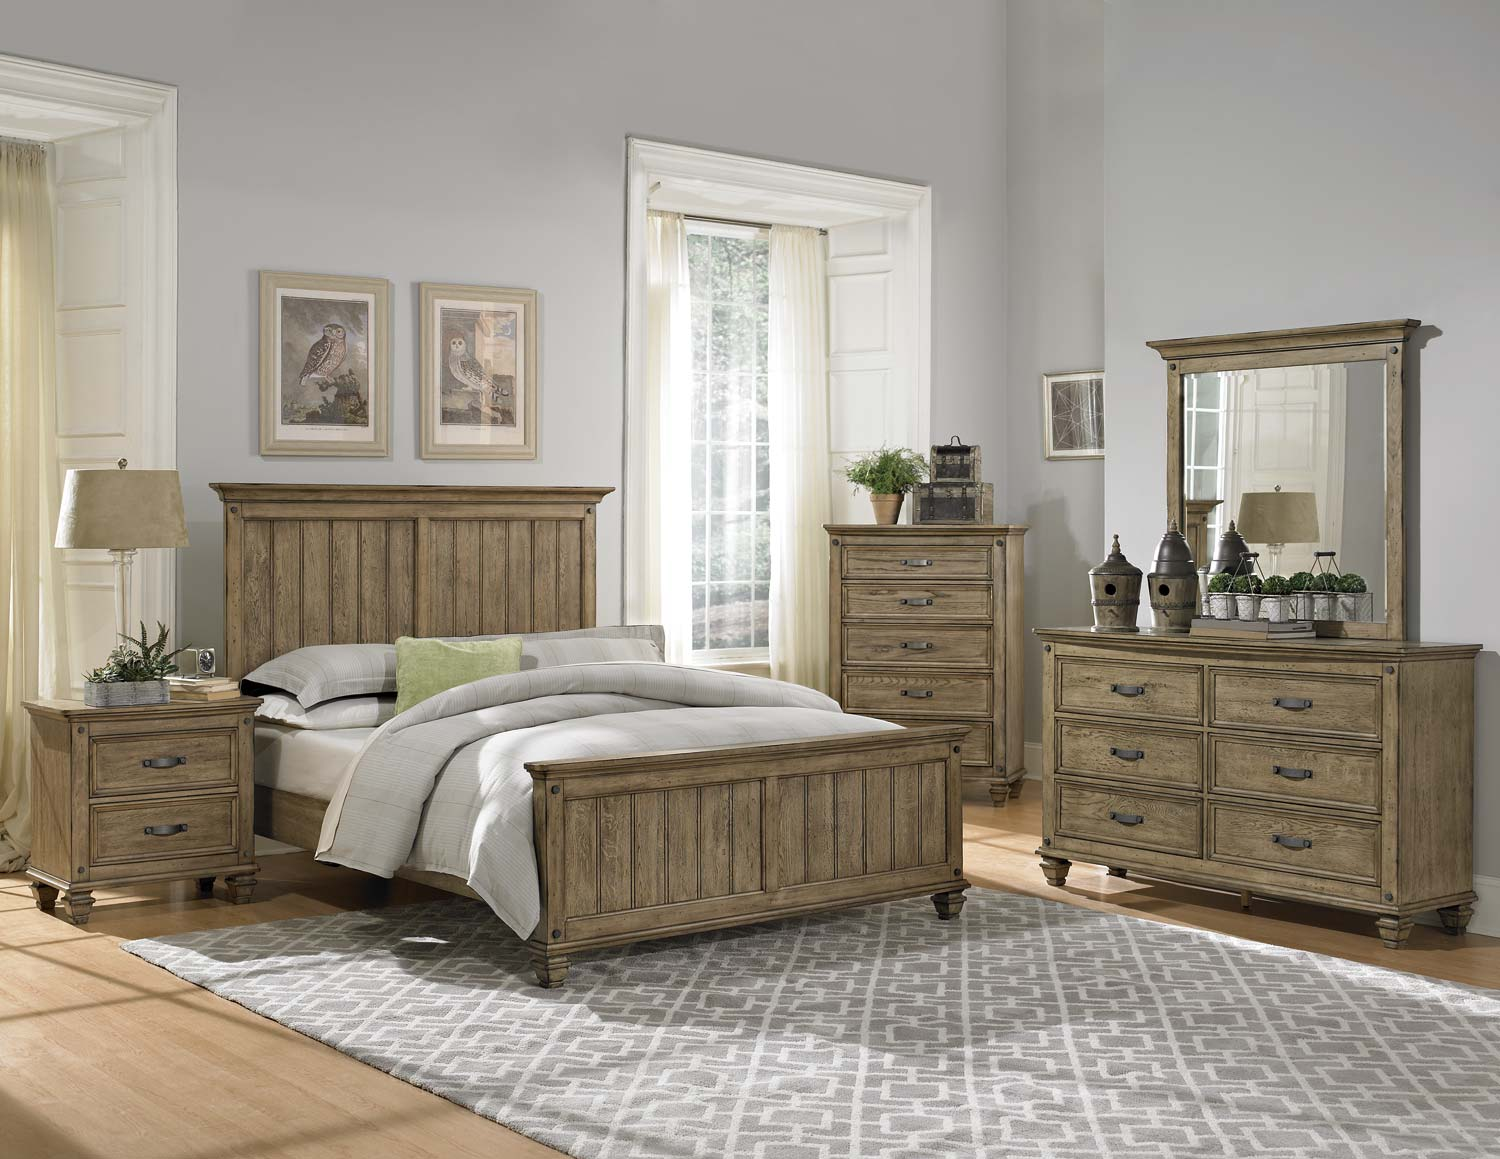 Homelegance sylvania bedroom set driftwood oak 2298 bed Seaside collection furniture